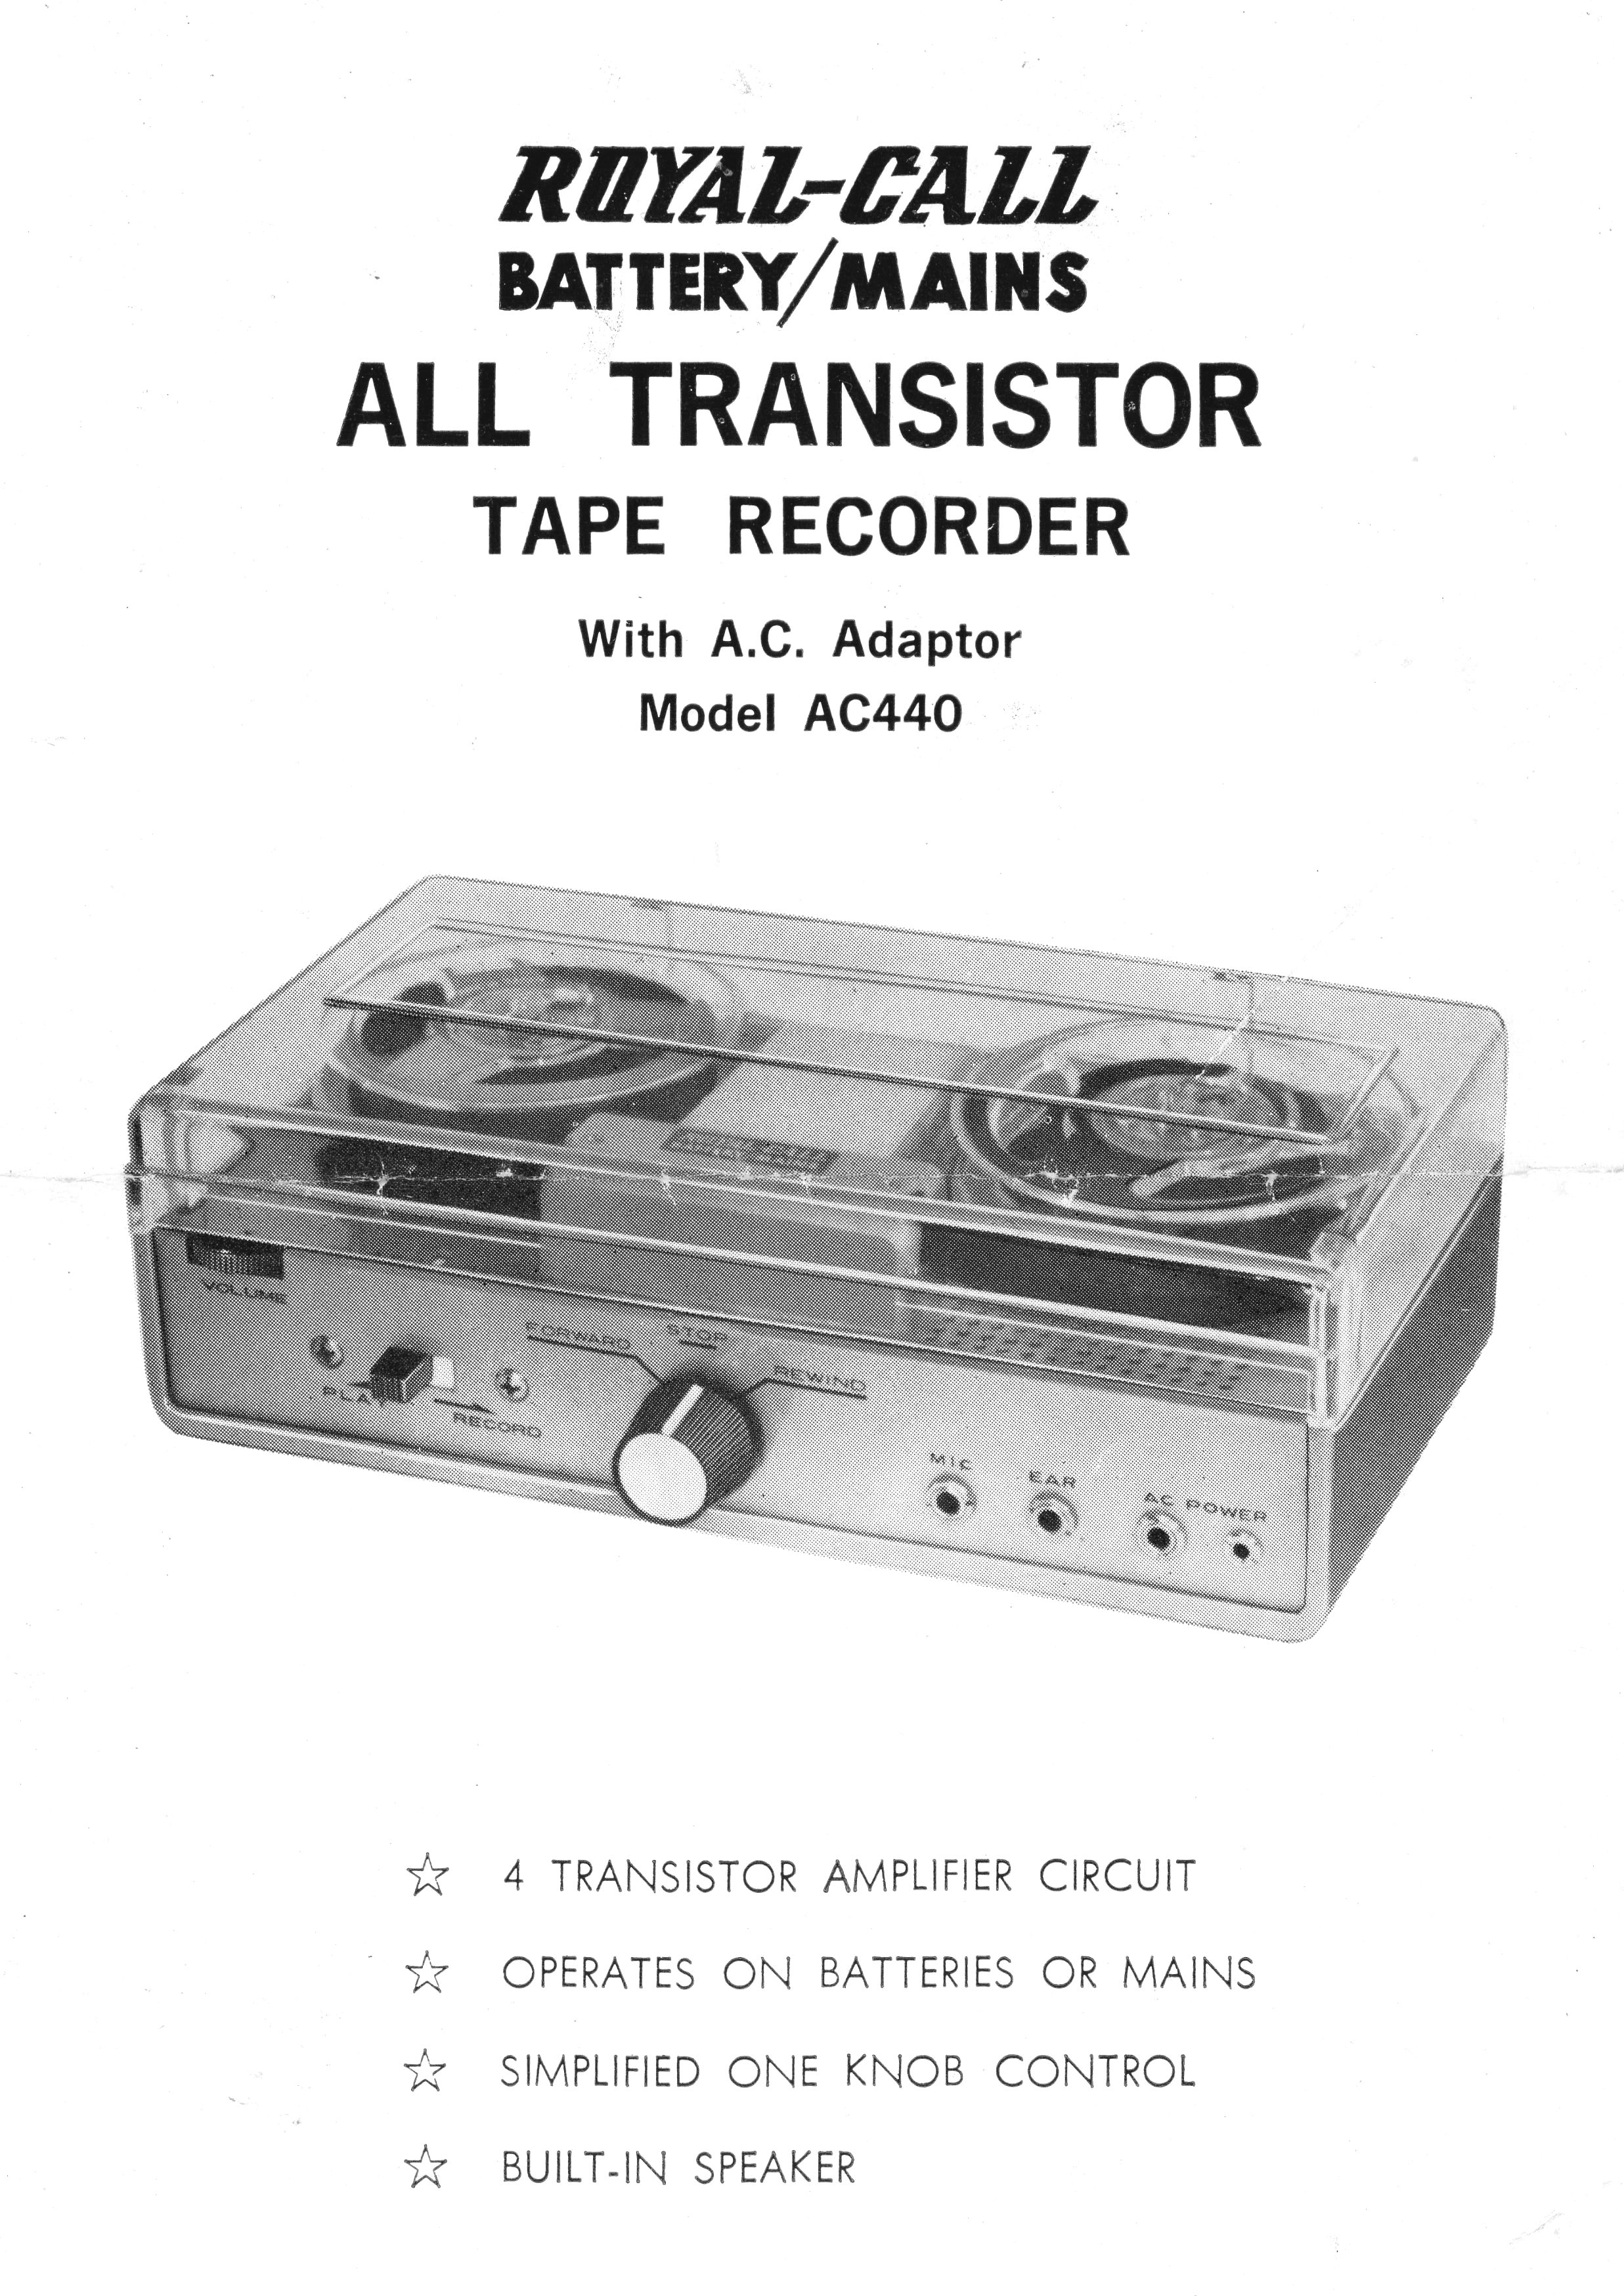 Royal-Call Tape Recorder Model AC440